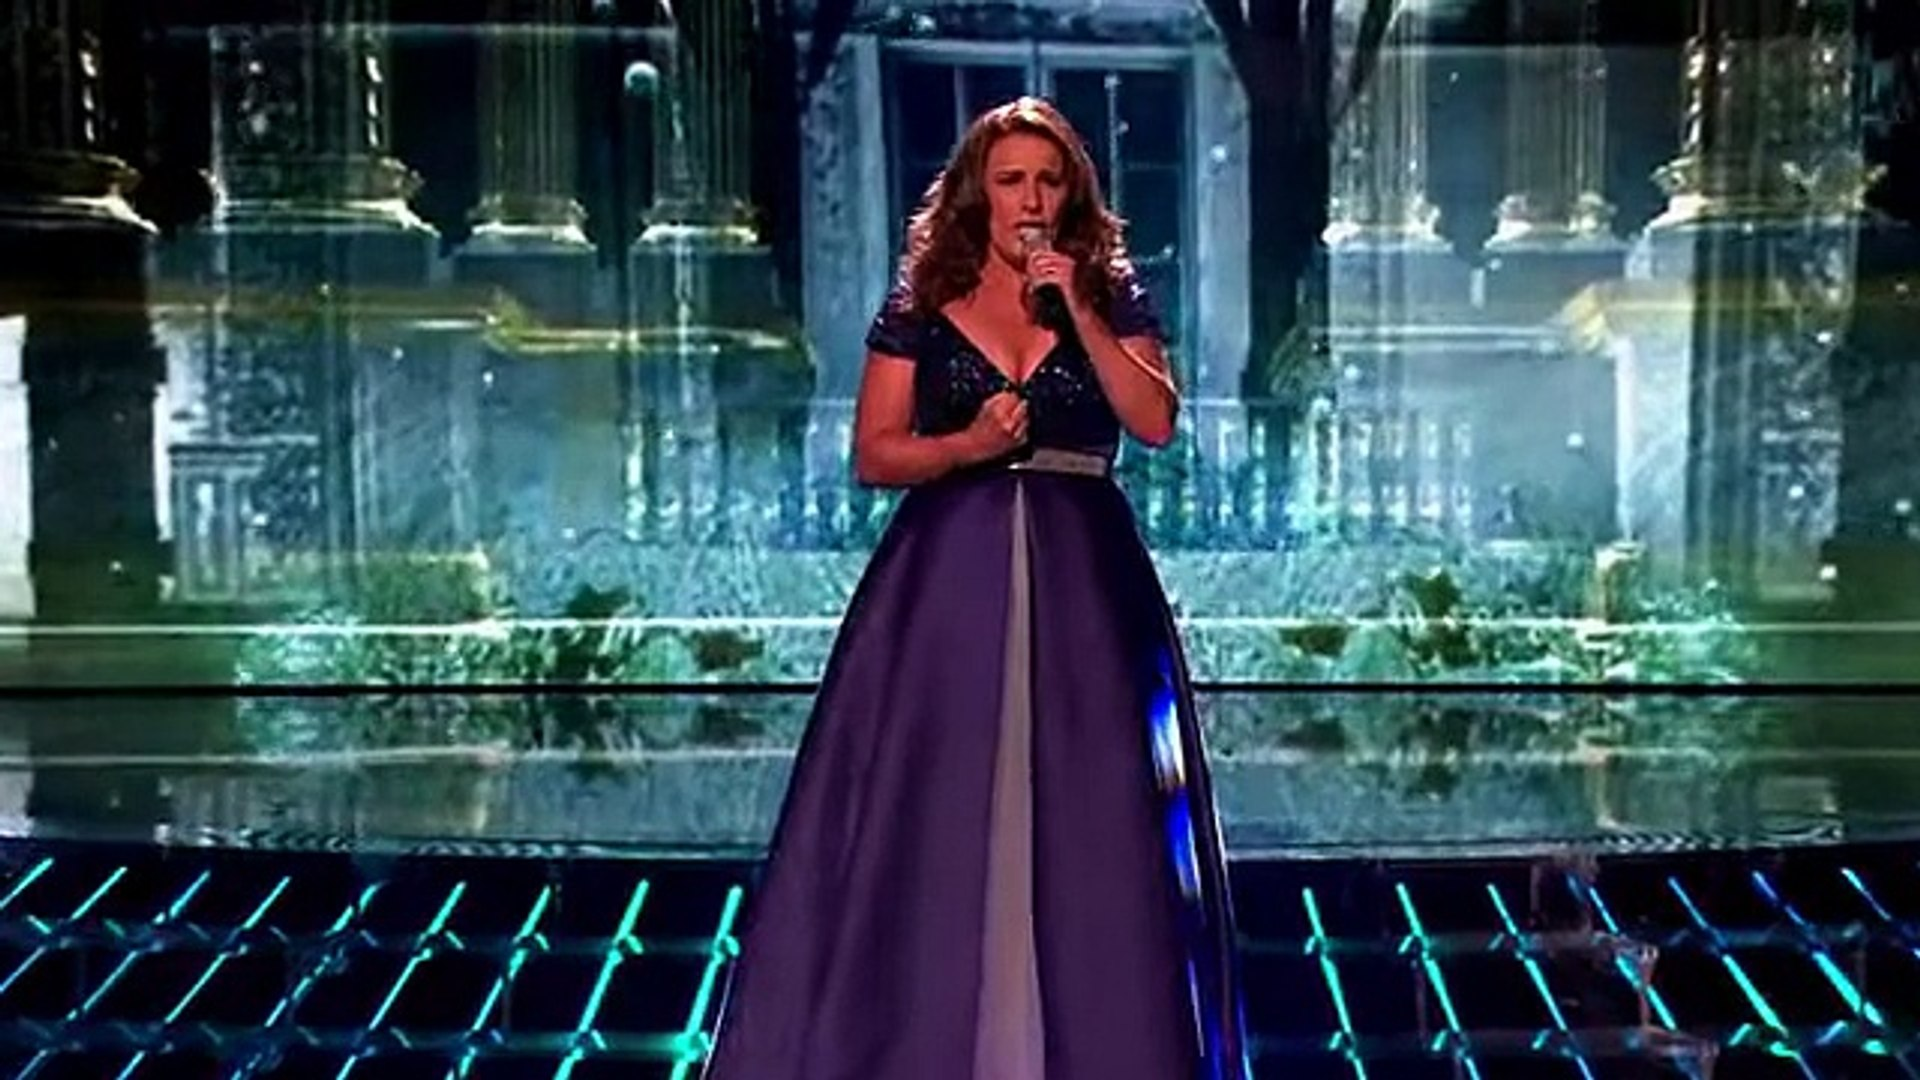 Sam Bailey discusses life with Mrs O in her Samsung Video Diary - The X Factor UK 2013 -Performance